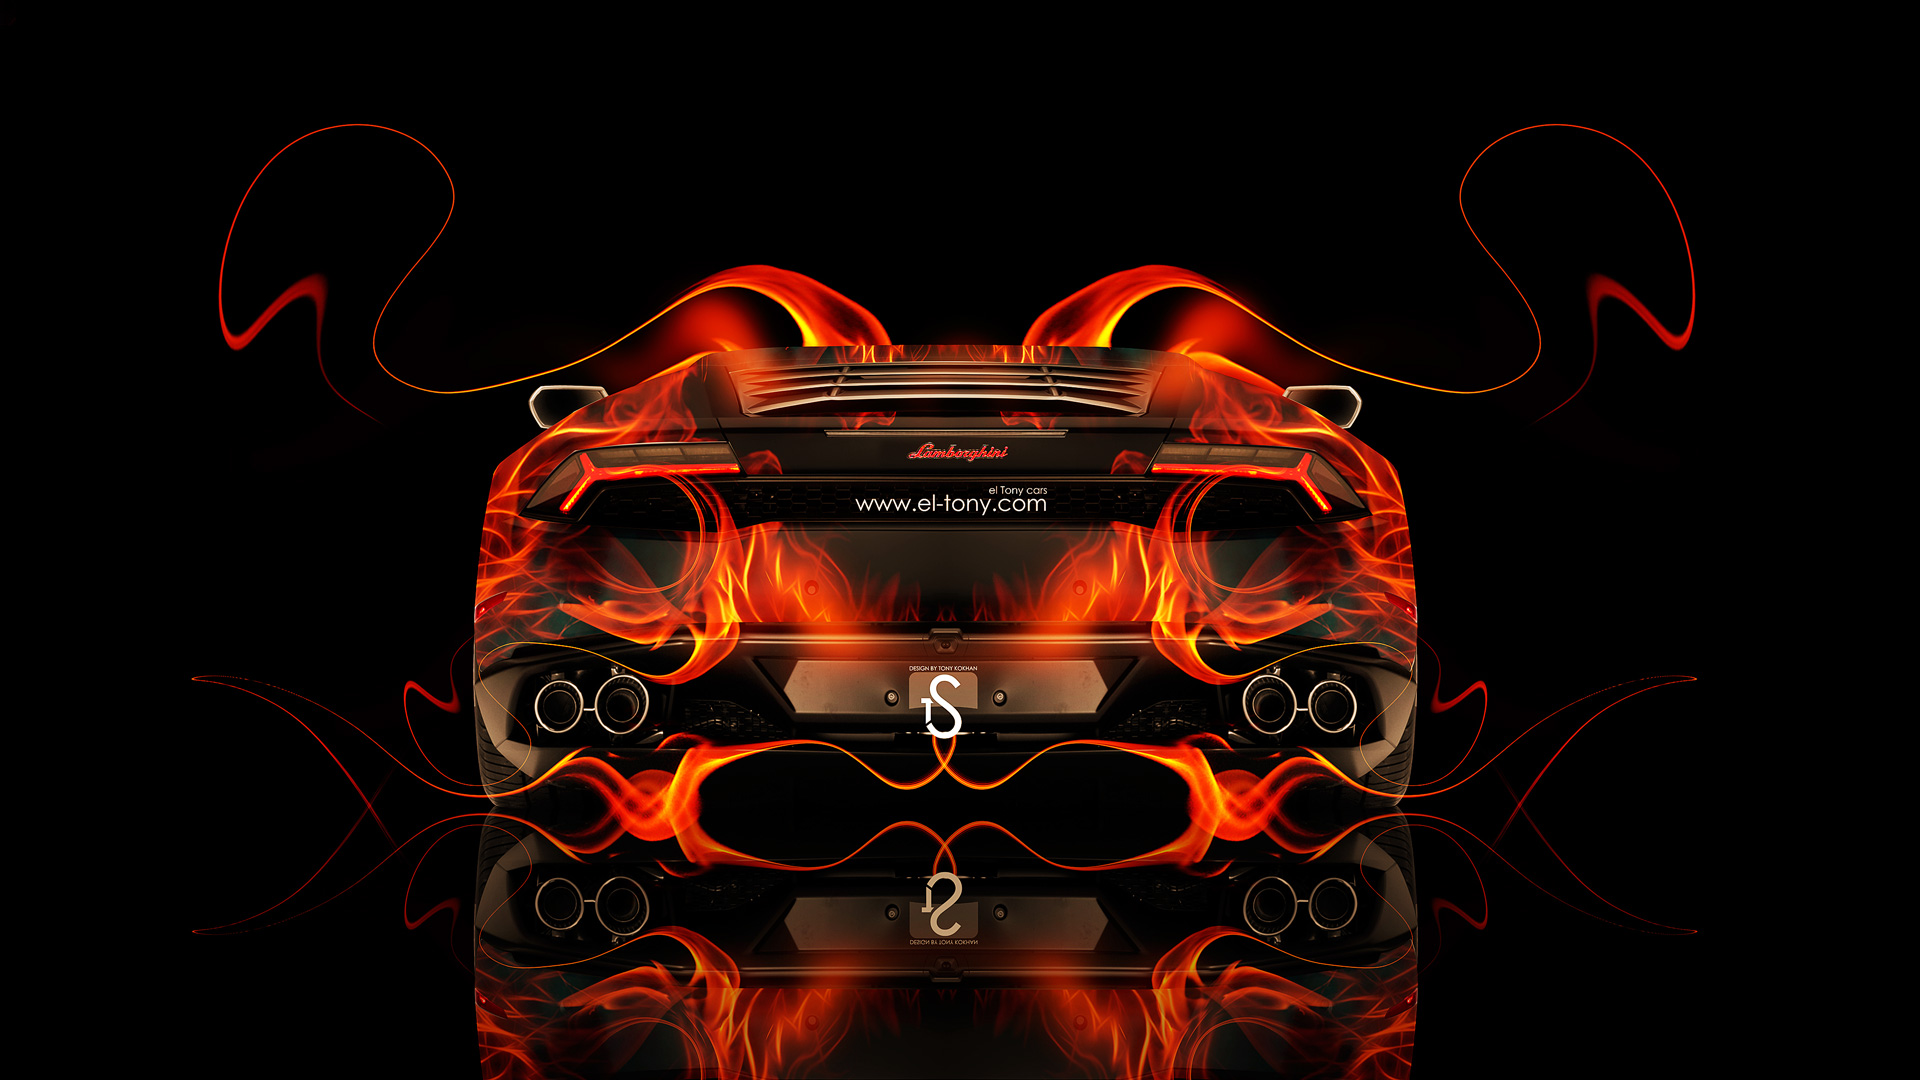 Genial Lamborghini Huracan Back Fire Abstract Car 2014 HD